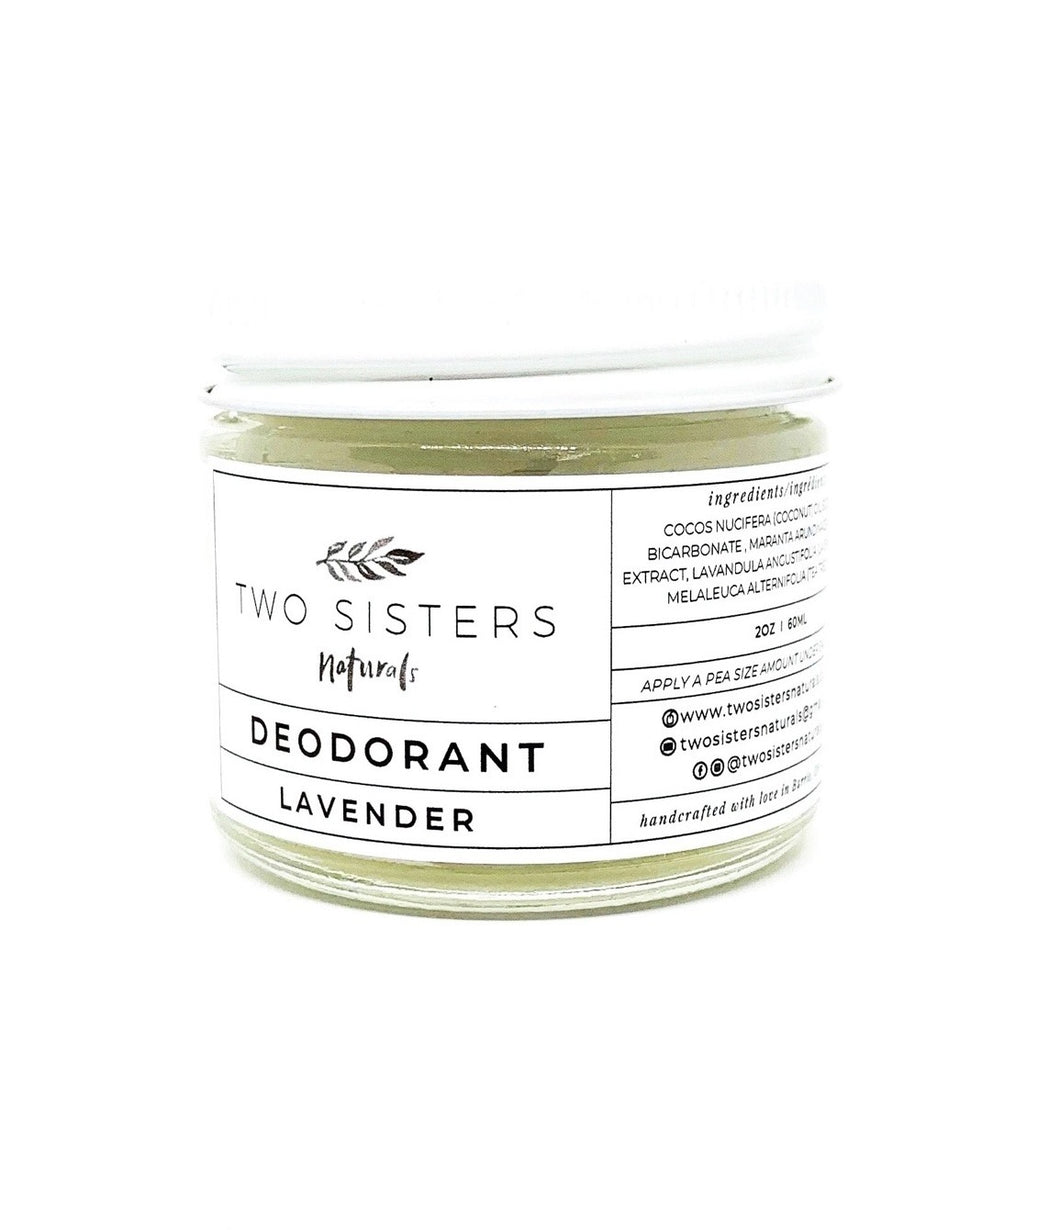 Two Sisters Naturals Lavender Deodorant!